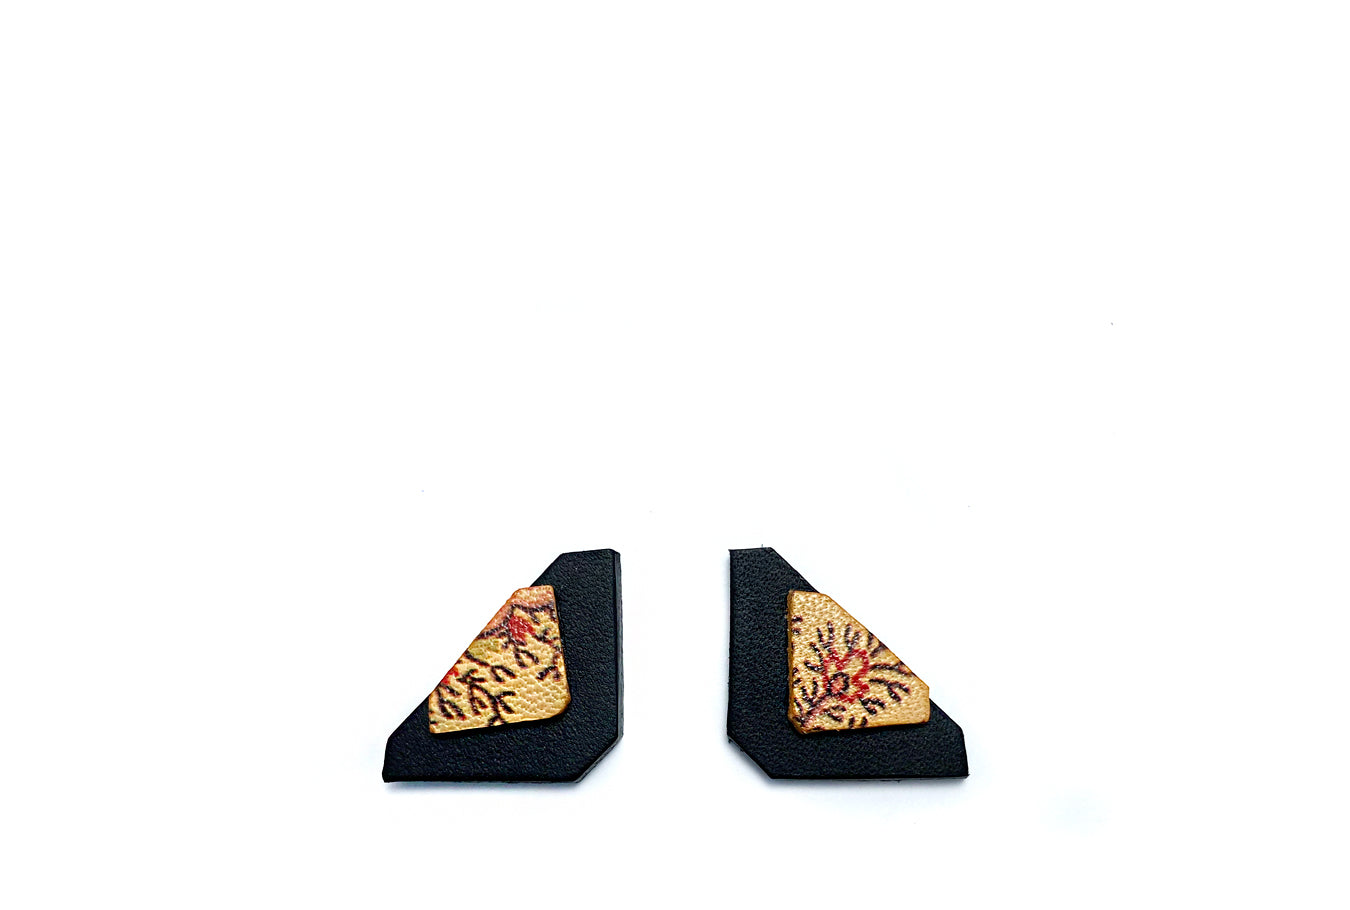 Paisley & Black Asci Earrings